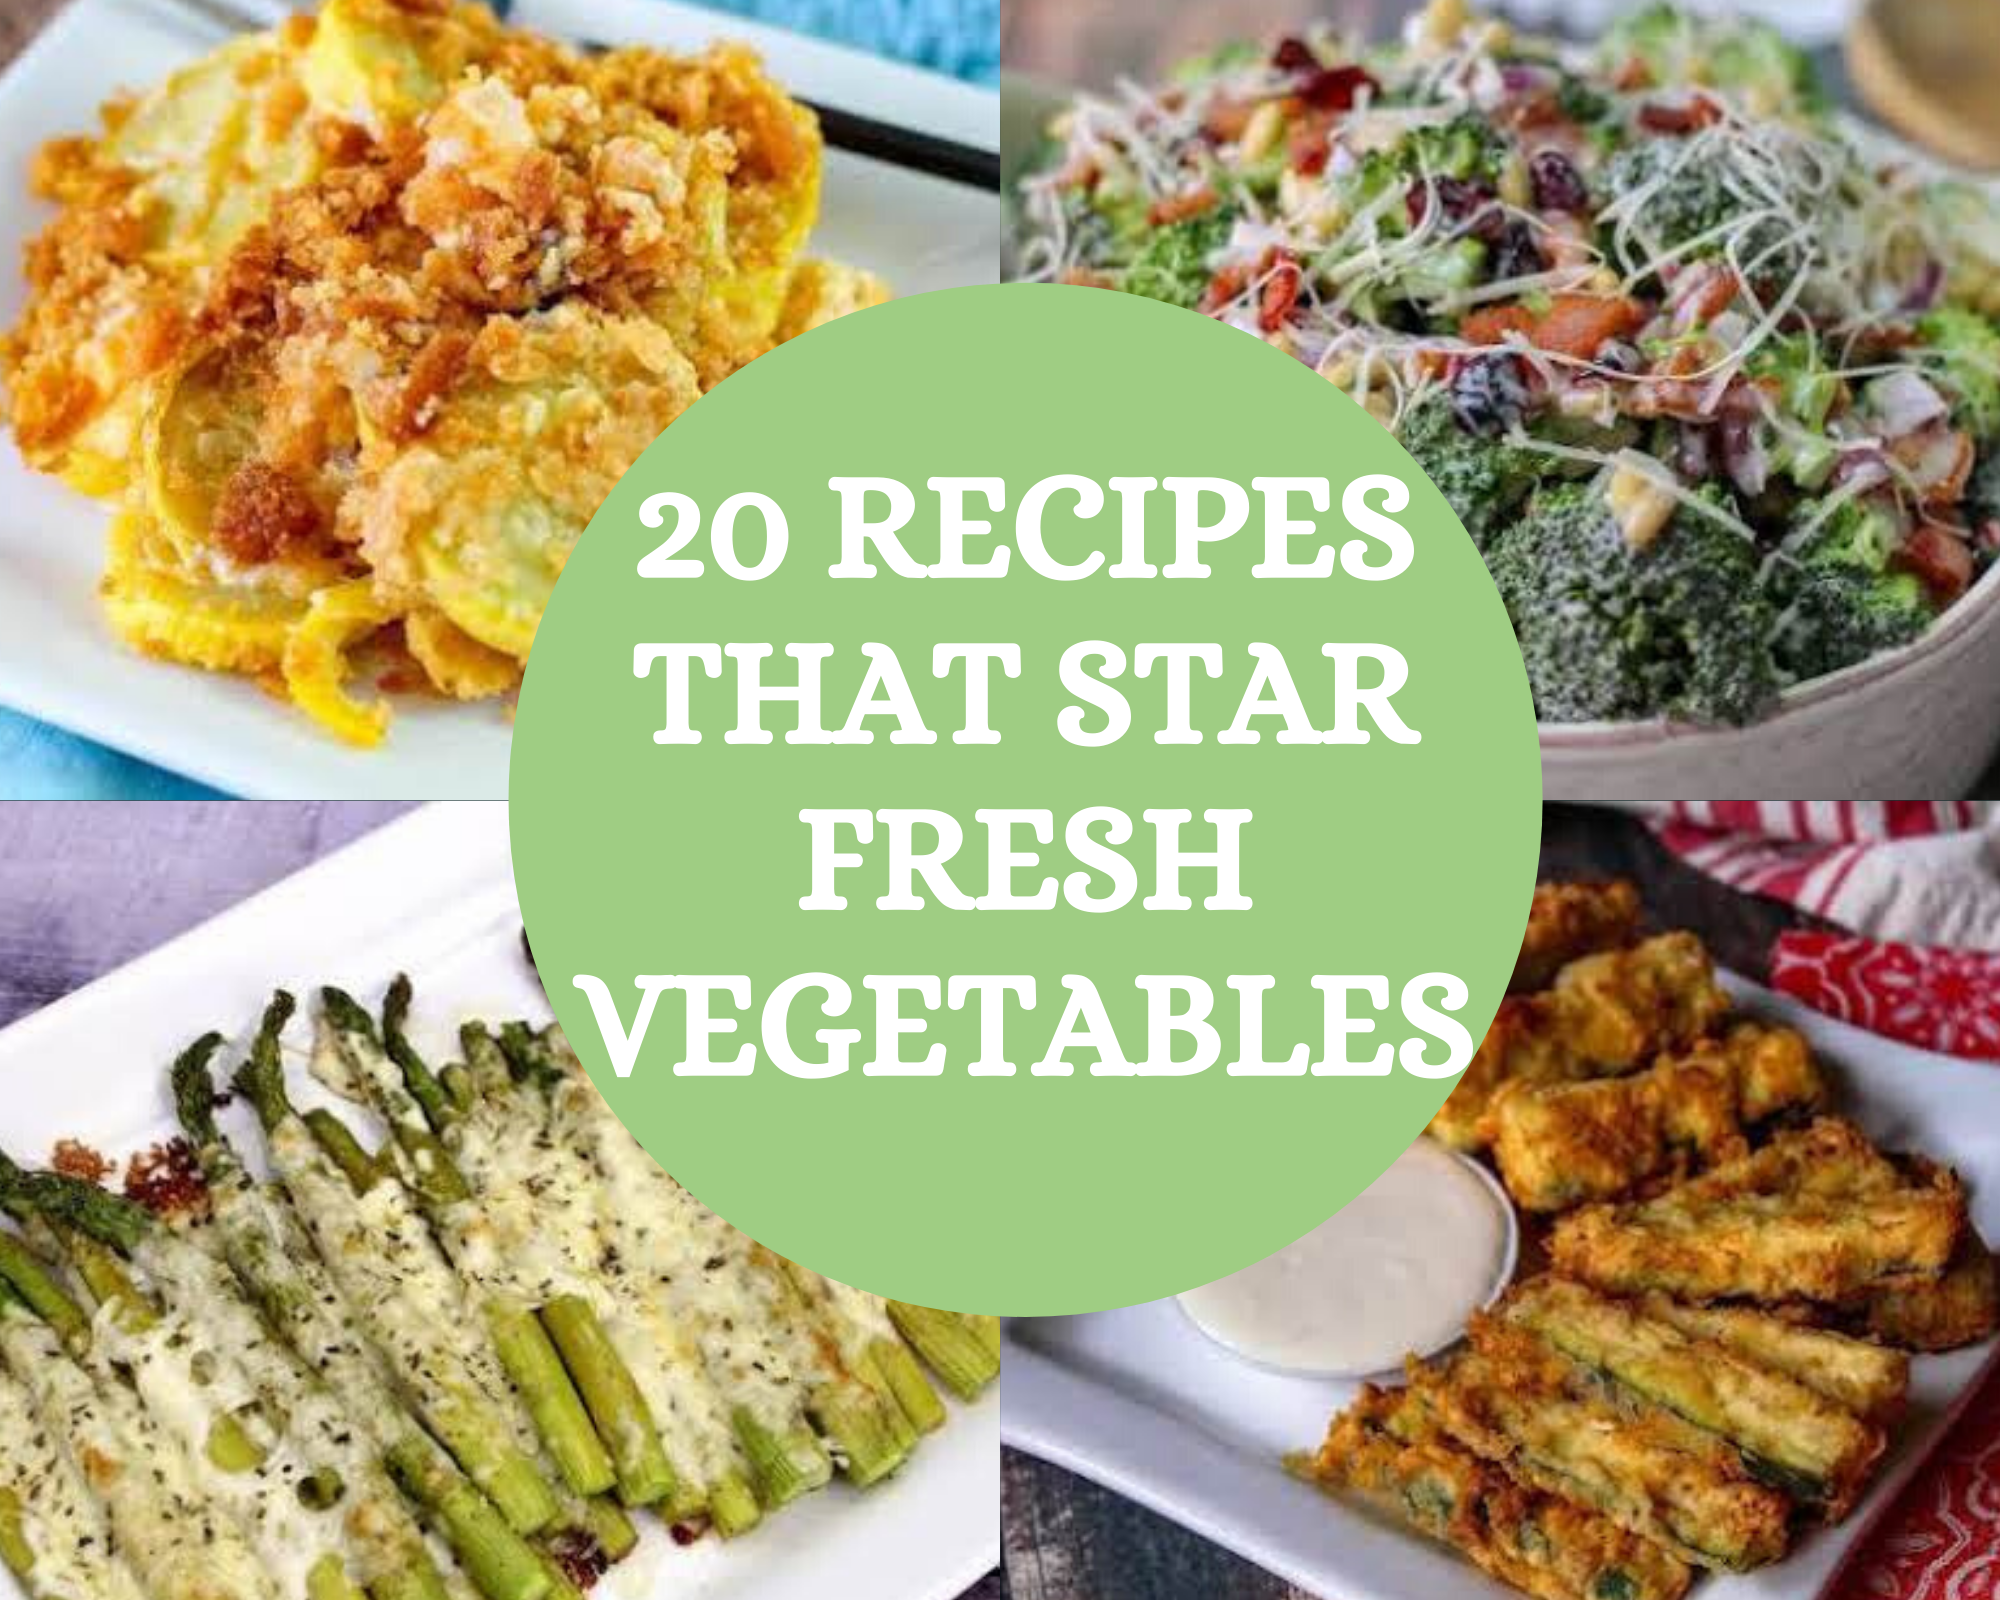 recipes that star fresh vegetables